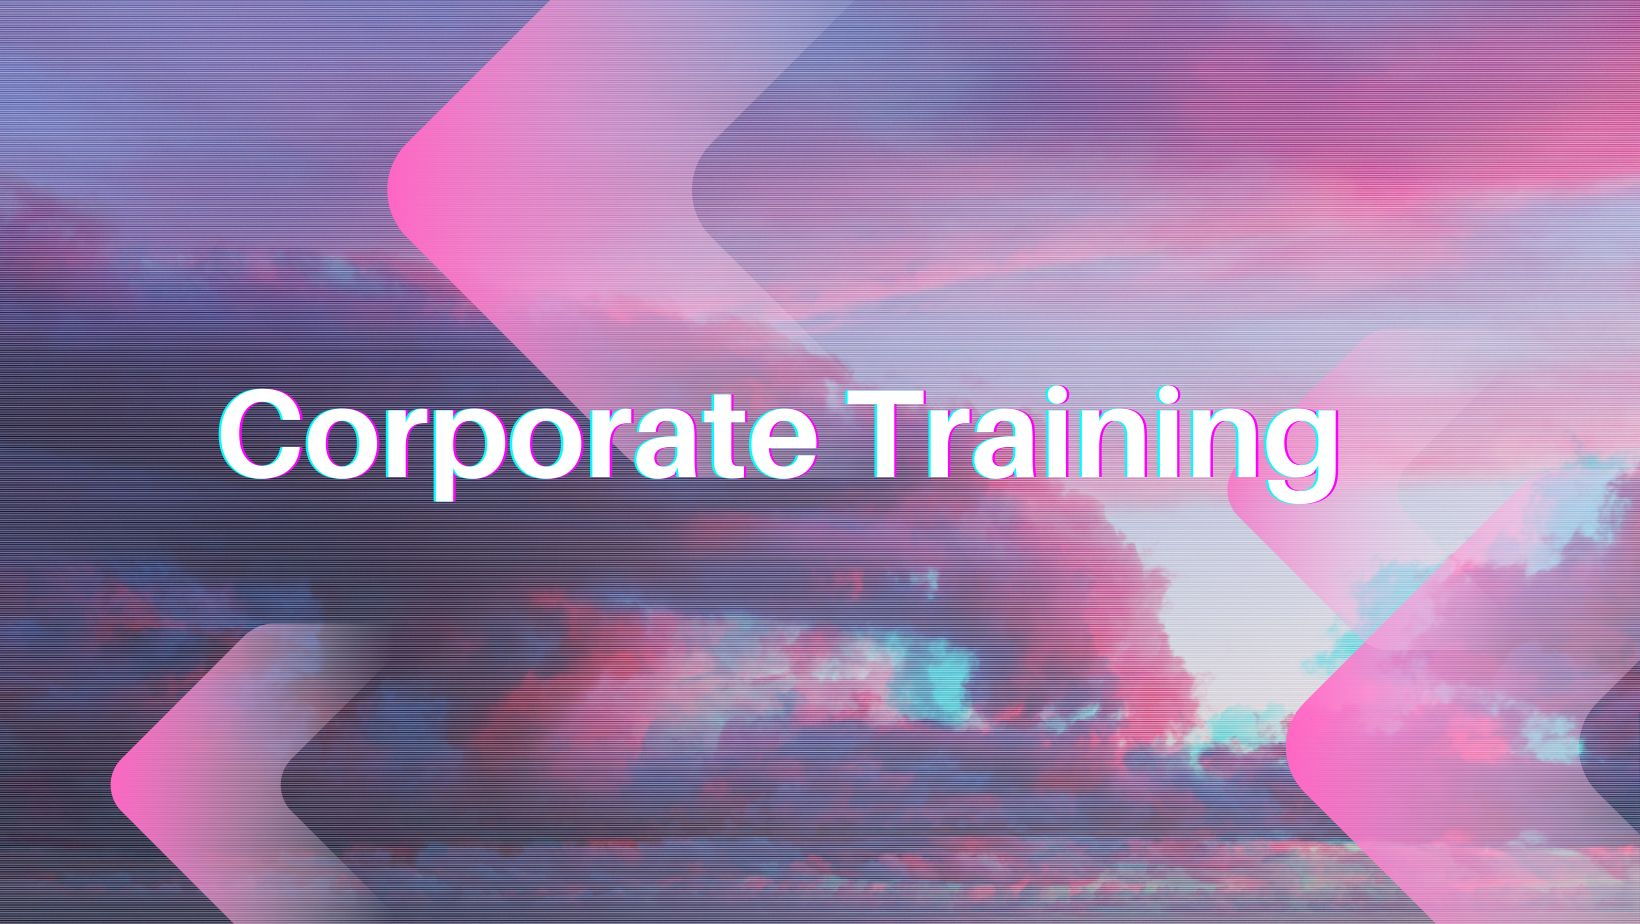 /how-can-a-small-it-company-implement-corporate-training-by-its-own-efforts-a-testers-case-study-pm3035g3 feature image